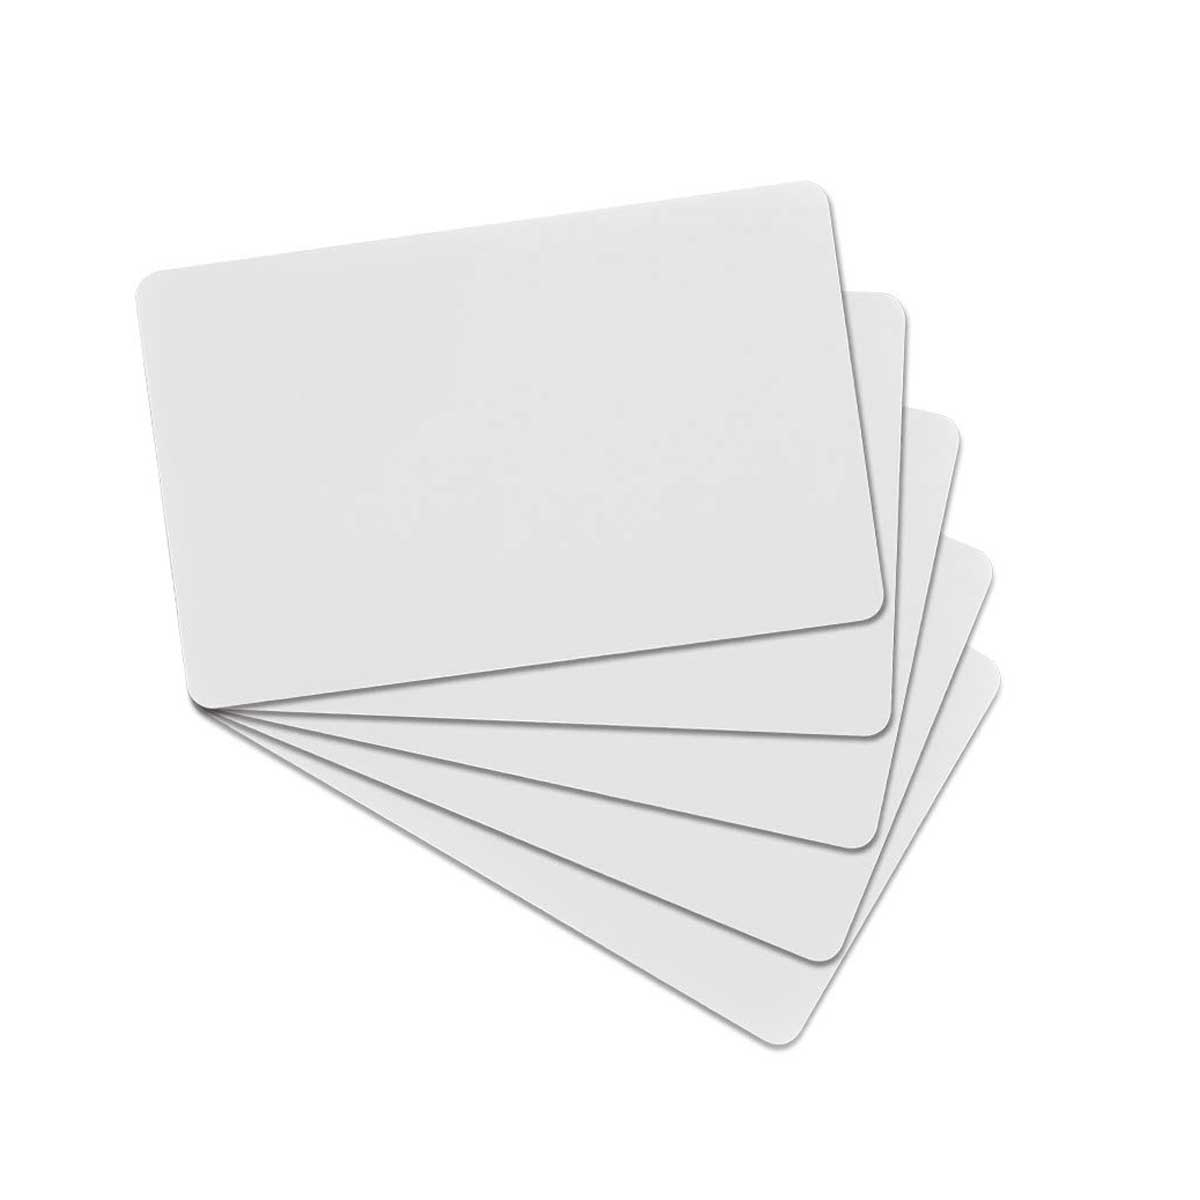 MIFRARE Classic 4k Contactless Smart Card